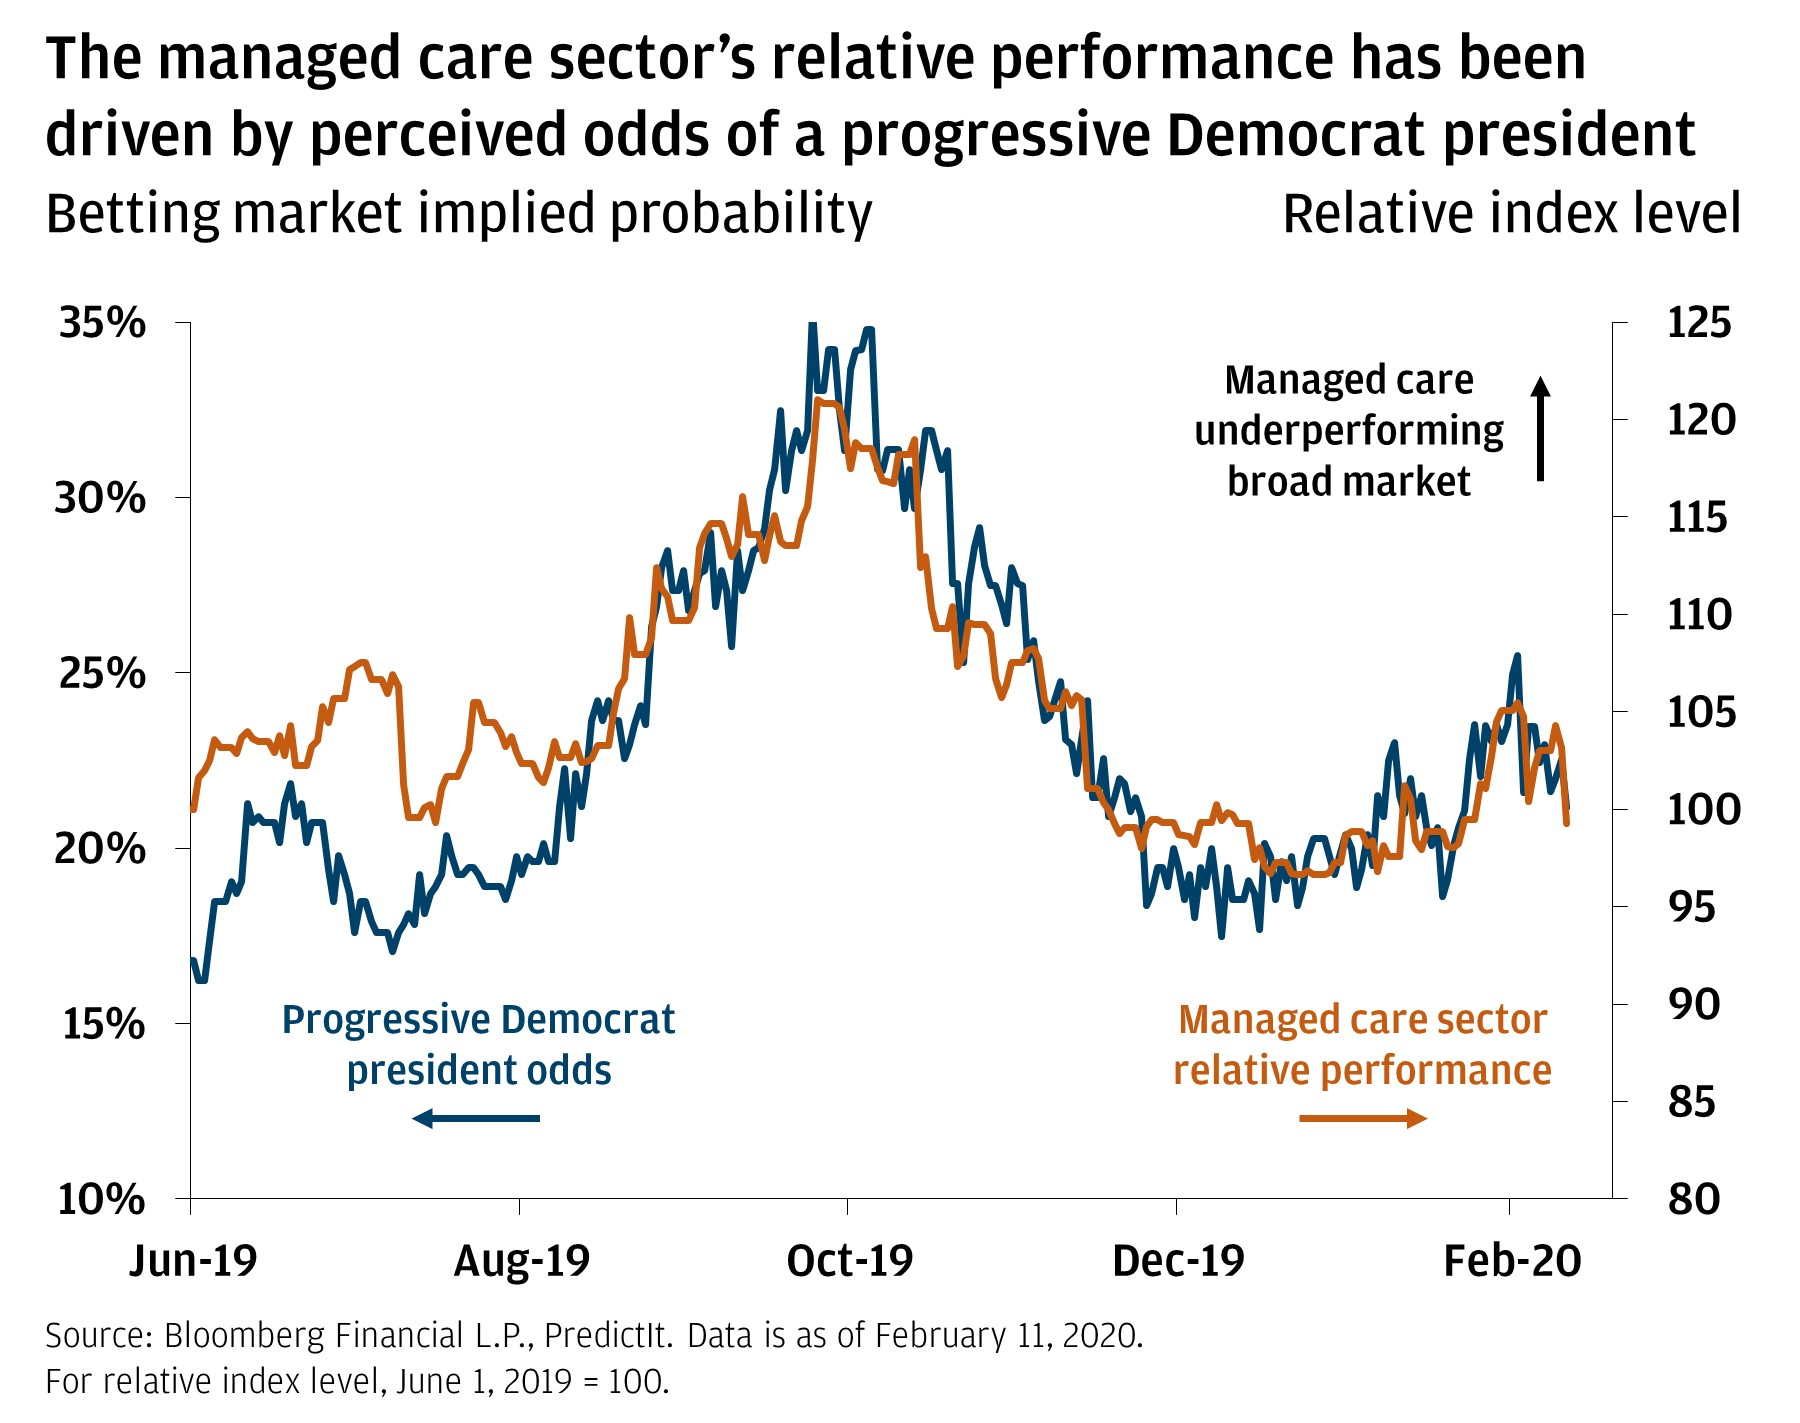 The line chart shows the managed care sector's performance relative to the S&P 500 and the perceived odds of a progressive Democratic president. It shows the two are correlated from June 2019 through February 11, 2019.